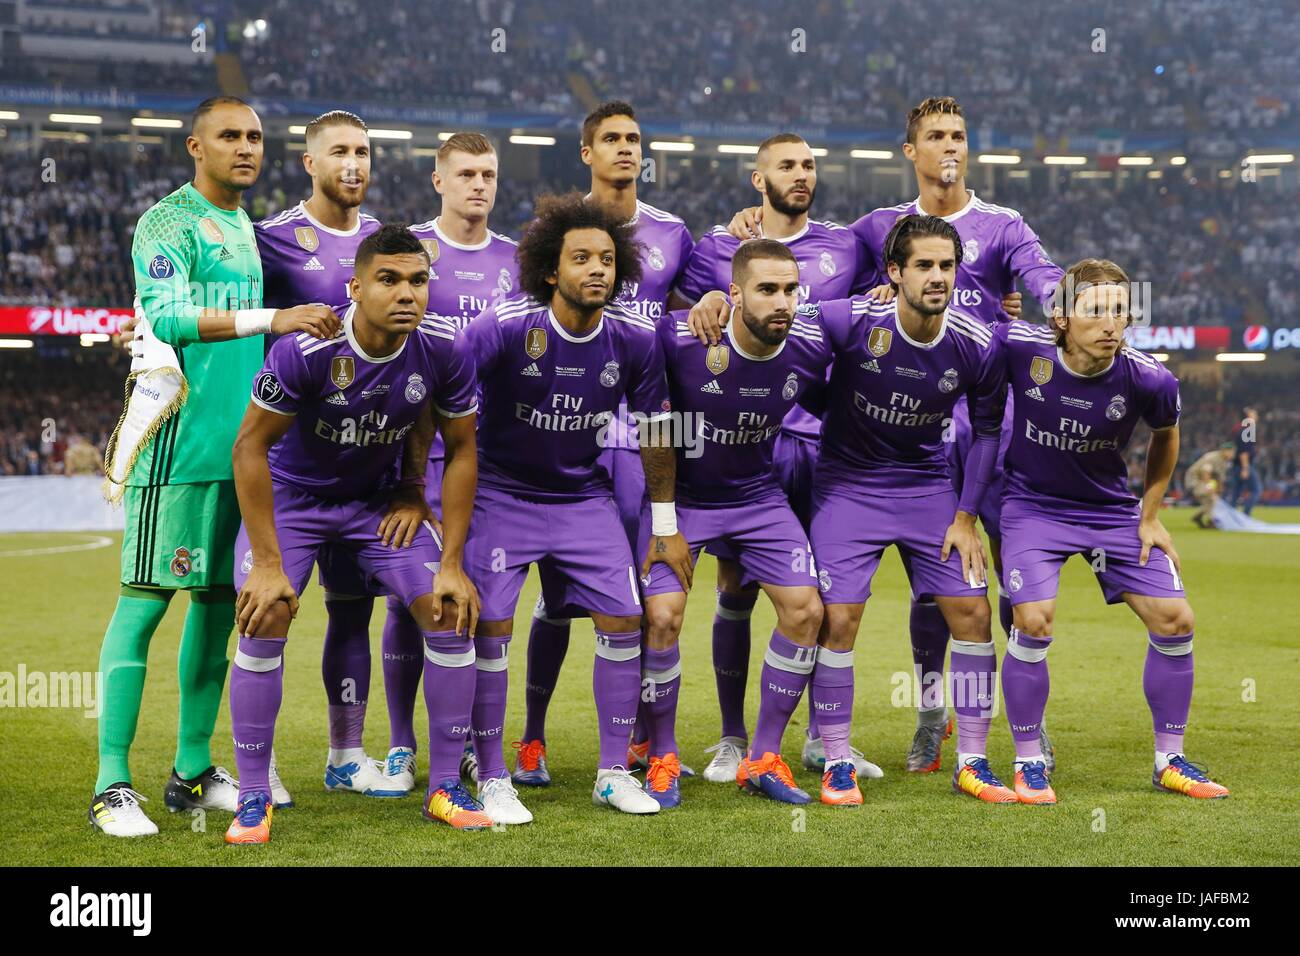 Cardiff Wales 3rd June 2017 Real Madrid Team Group Line